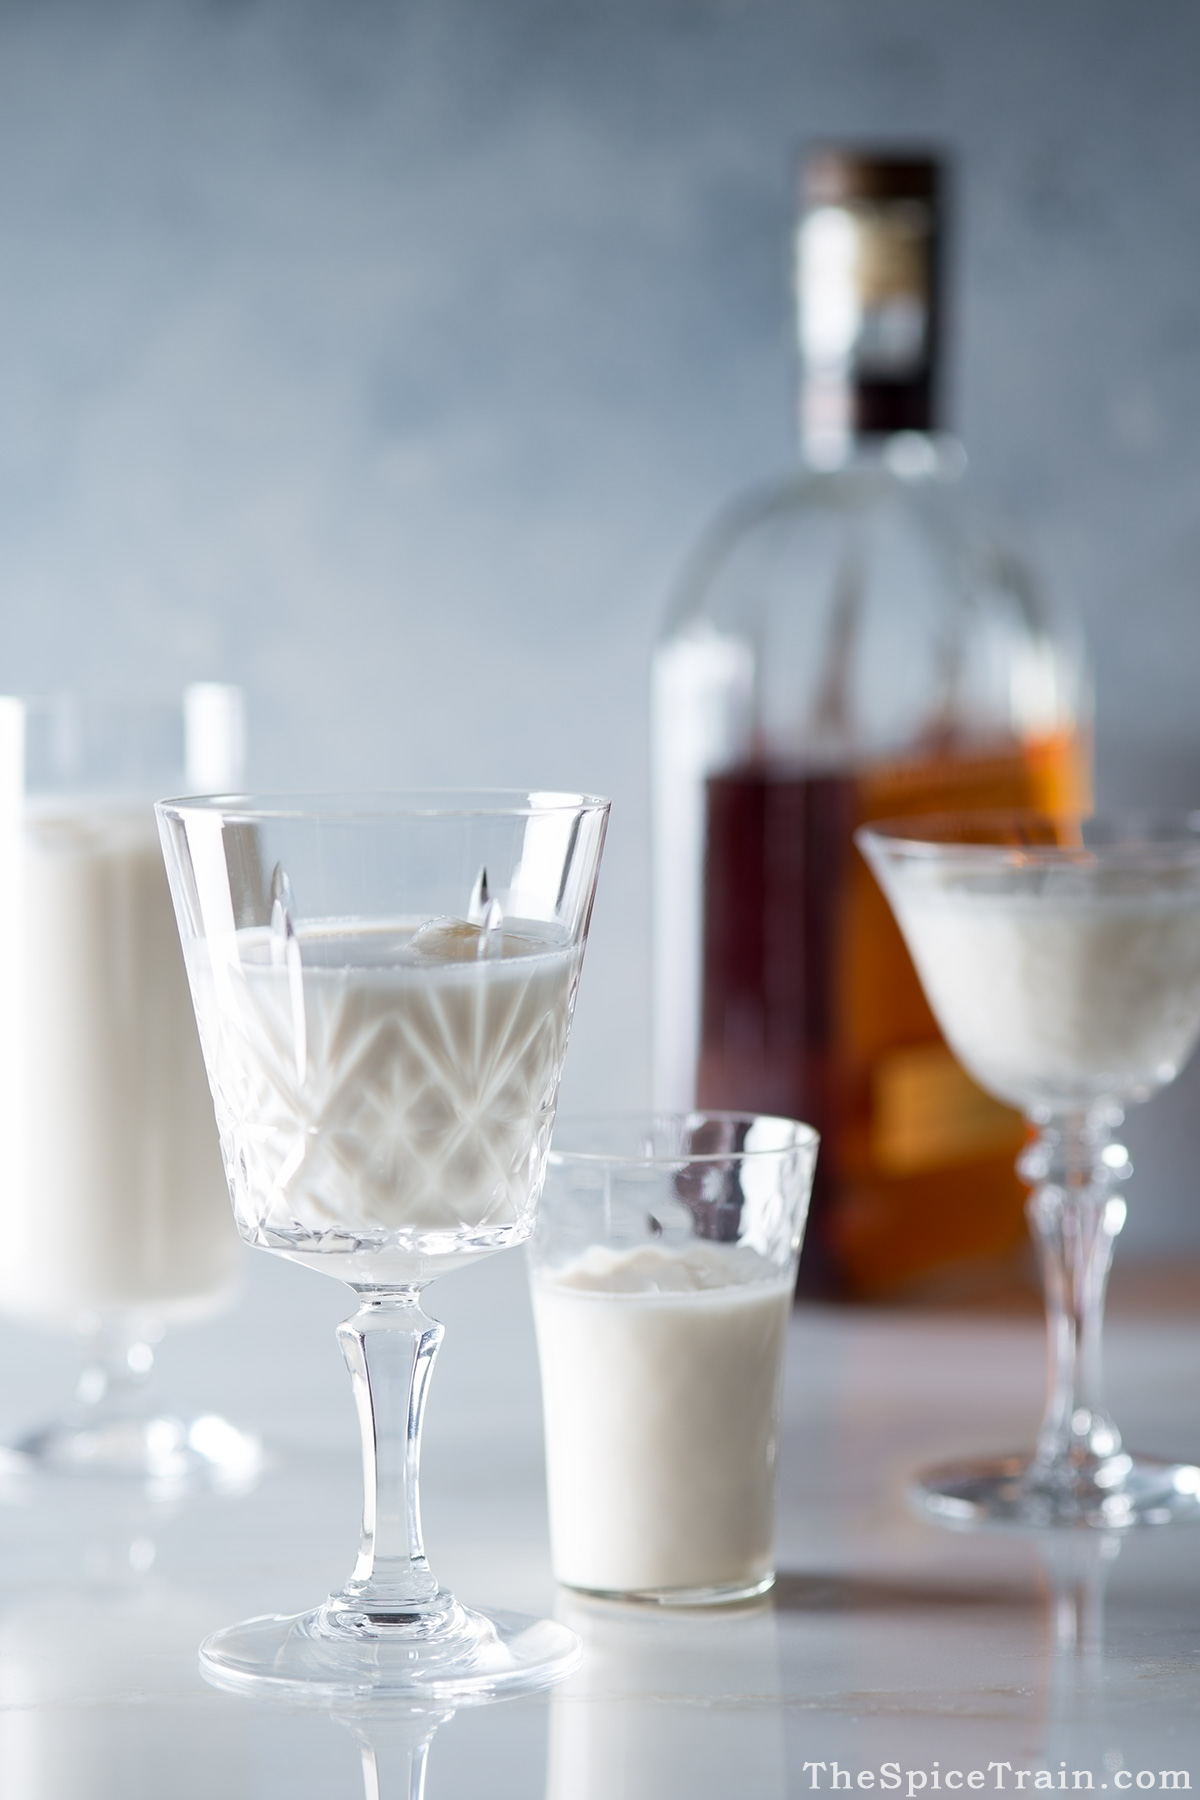 Glasses filled with Bourbon milk punch and a bottle of Bourbon.